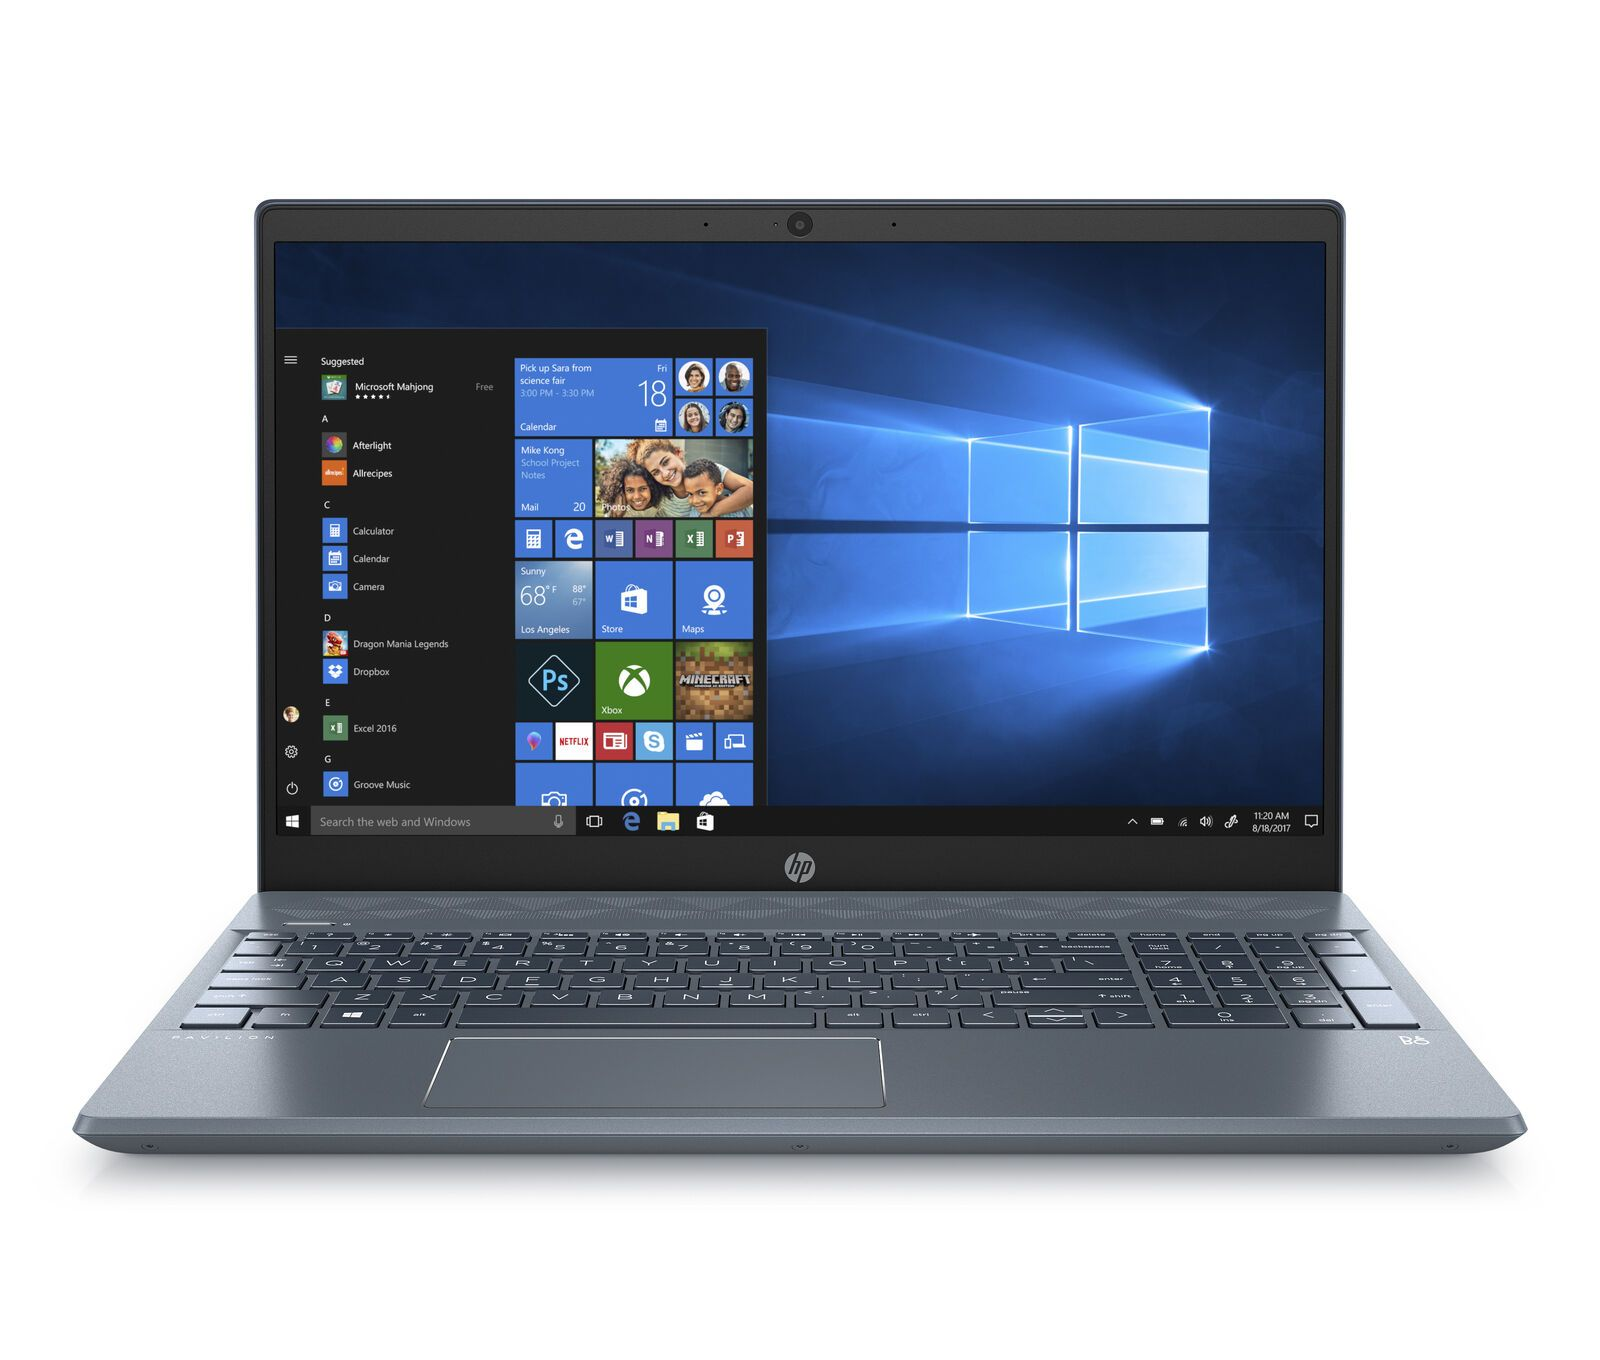 Hp 15 Cw1063wm Pavilion 15 6 Fhd Ryzen 5 3500u 2 1ghz 8gb Ram 1tb Hdd 128gb Ssd 193808003882 Ebay In 2020 Hp Pavilion Laptop Hp Pavilion Touch Screen Laptop